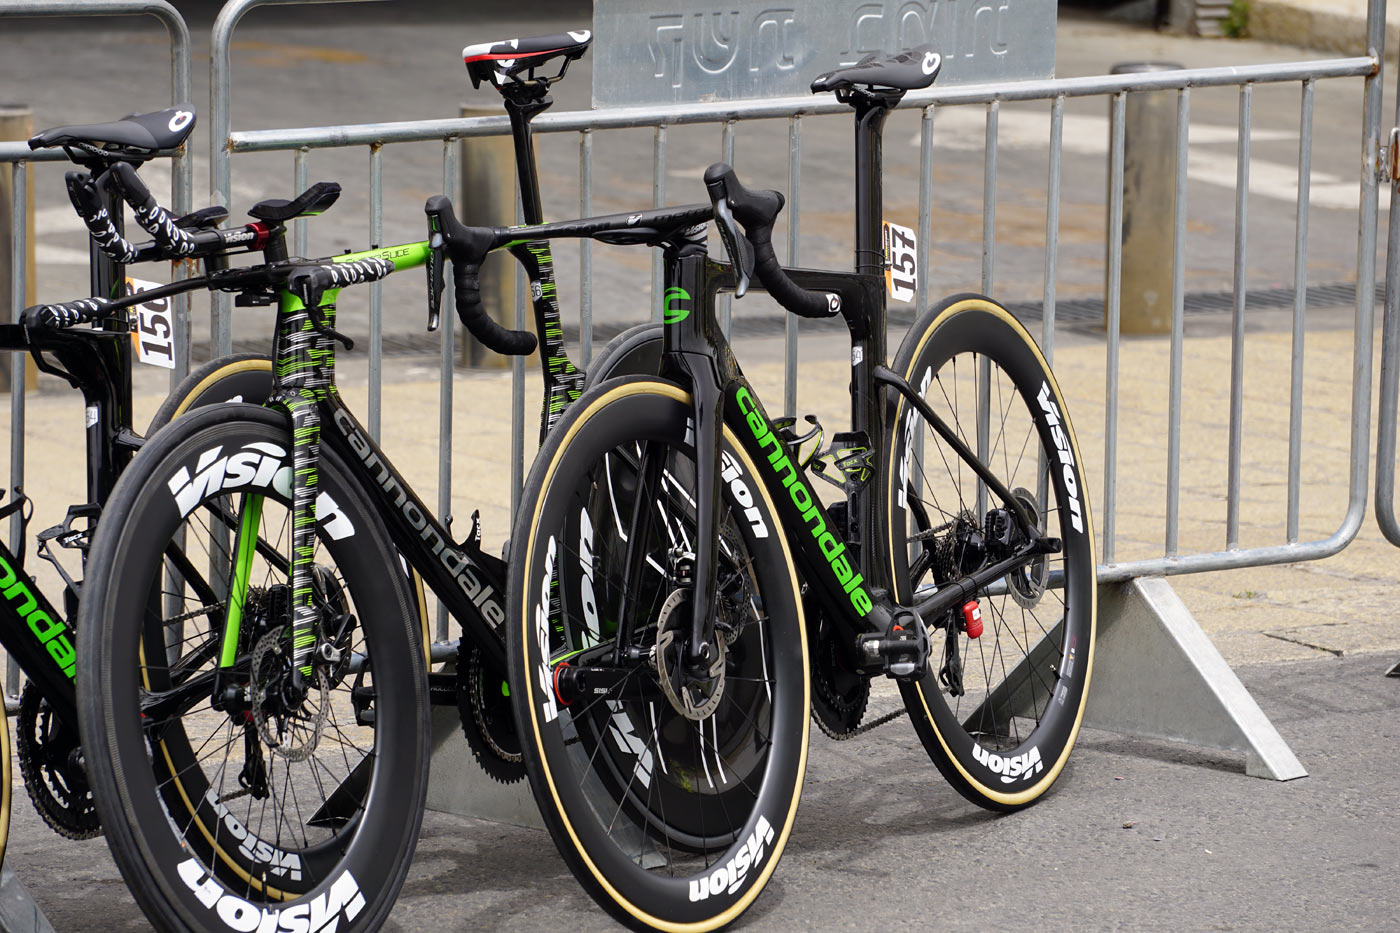 524a3f31795 Giro101 Tech: Prototype Cannondale System Six aero disc road bike spotted!